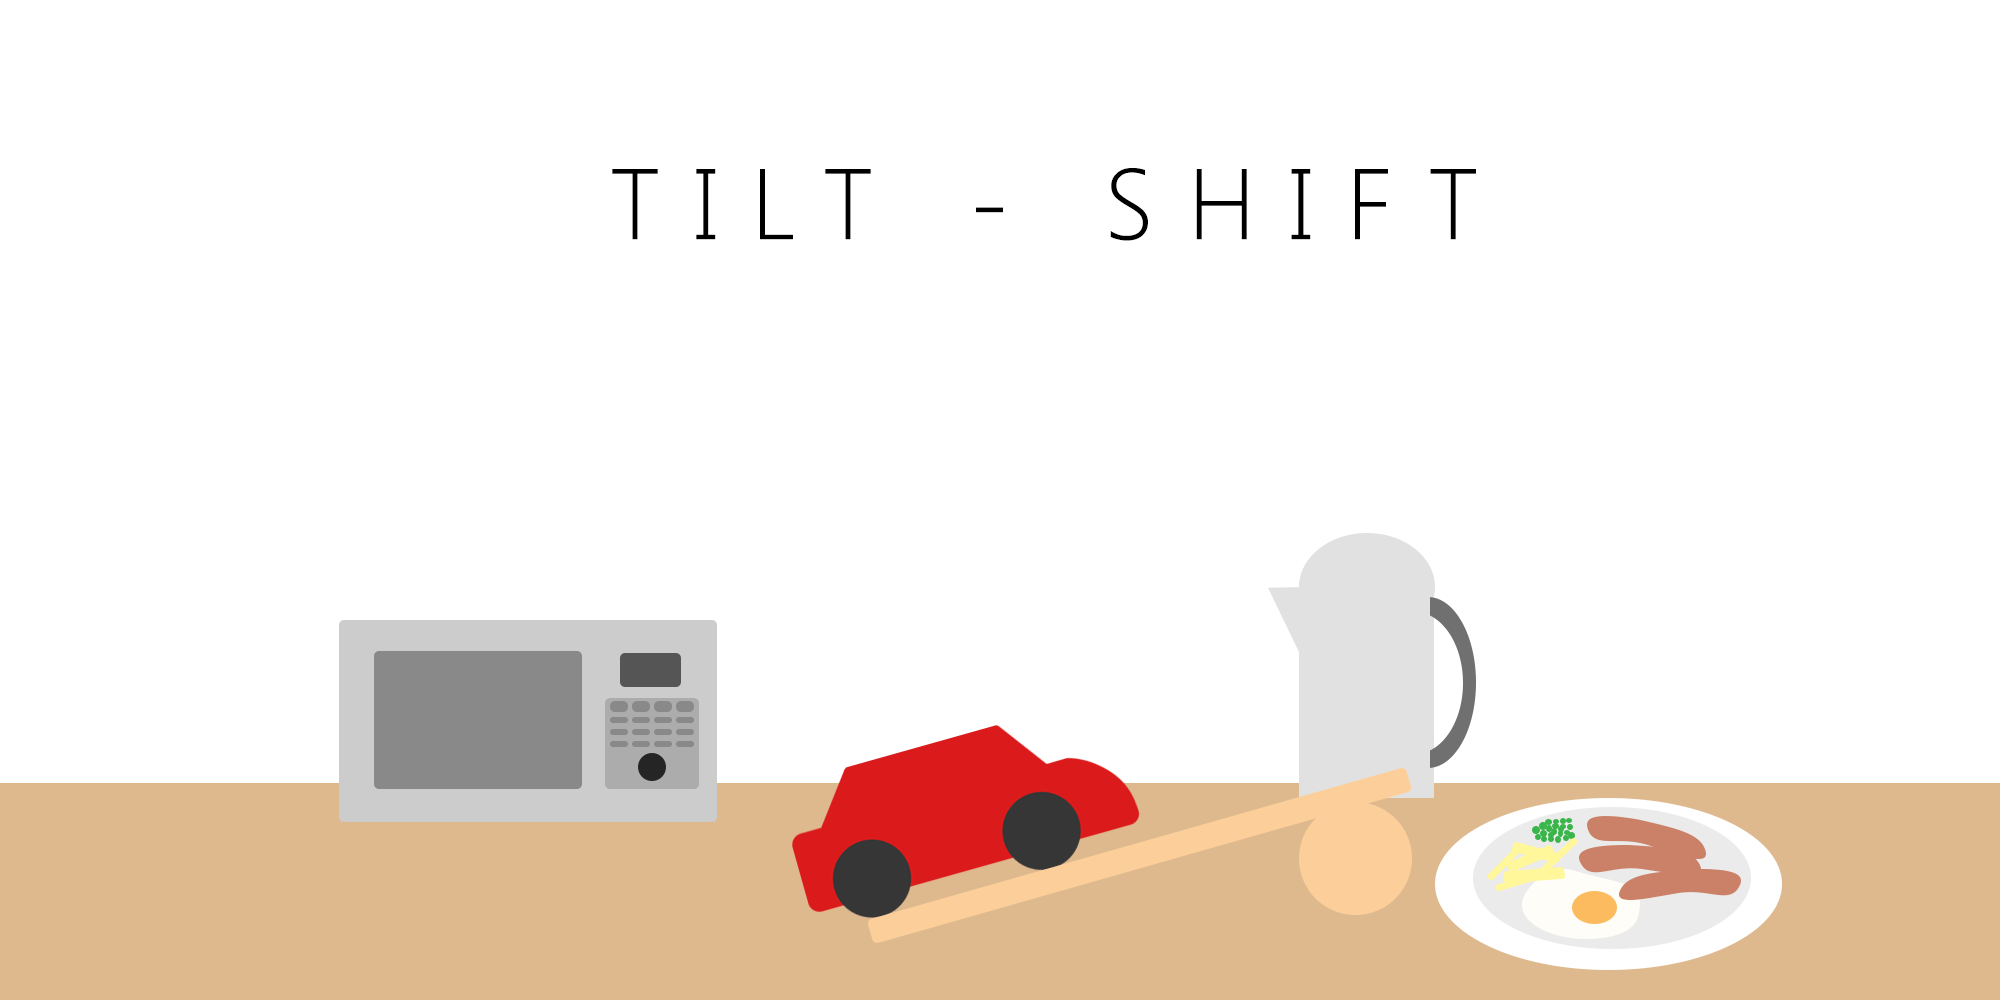 Project Tilt-Shift